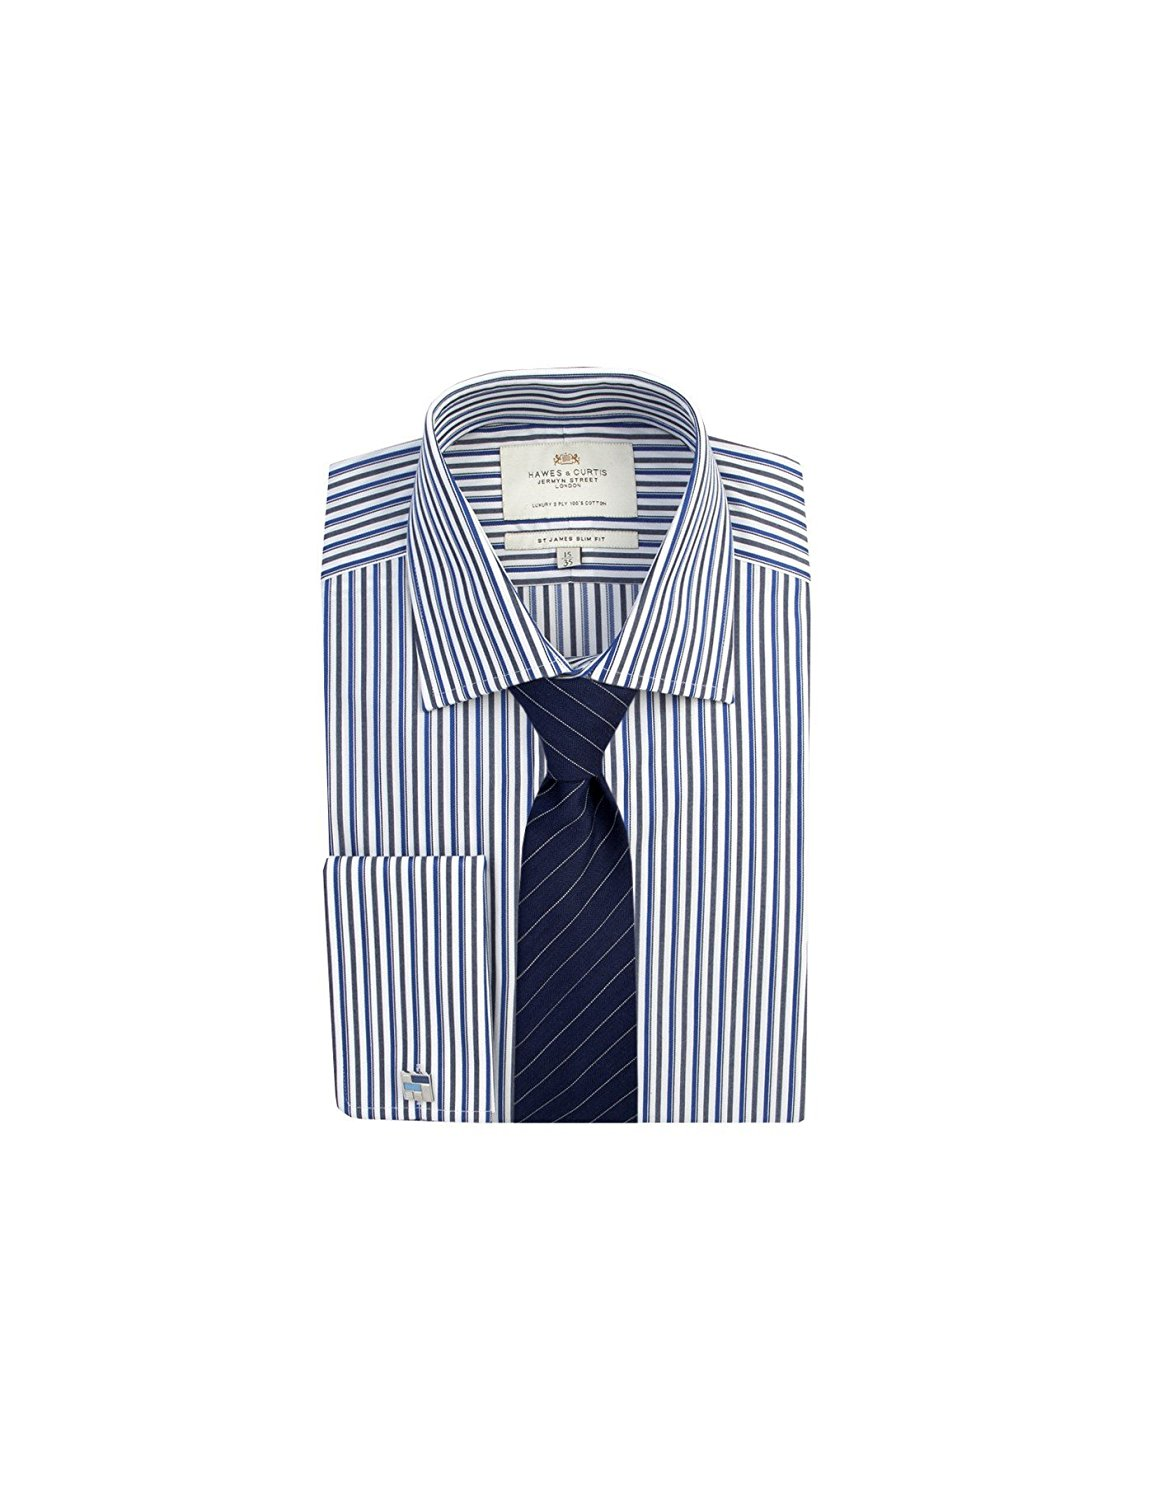 871558b1bb Get Quotations · HAWES & CURTIS Mens White & Grey Multi Stripe Slim Fit  Cotton Shirt - Double Cuff